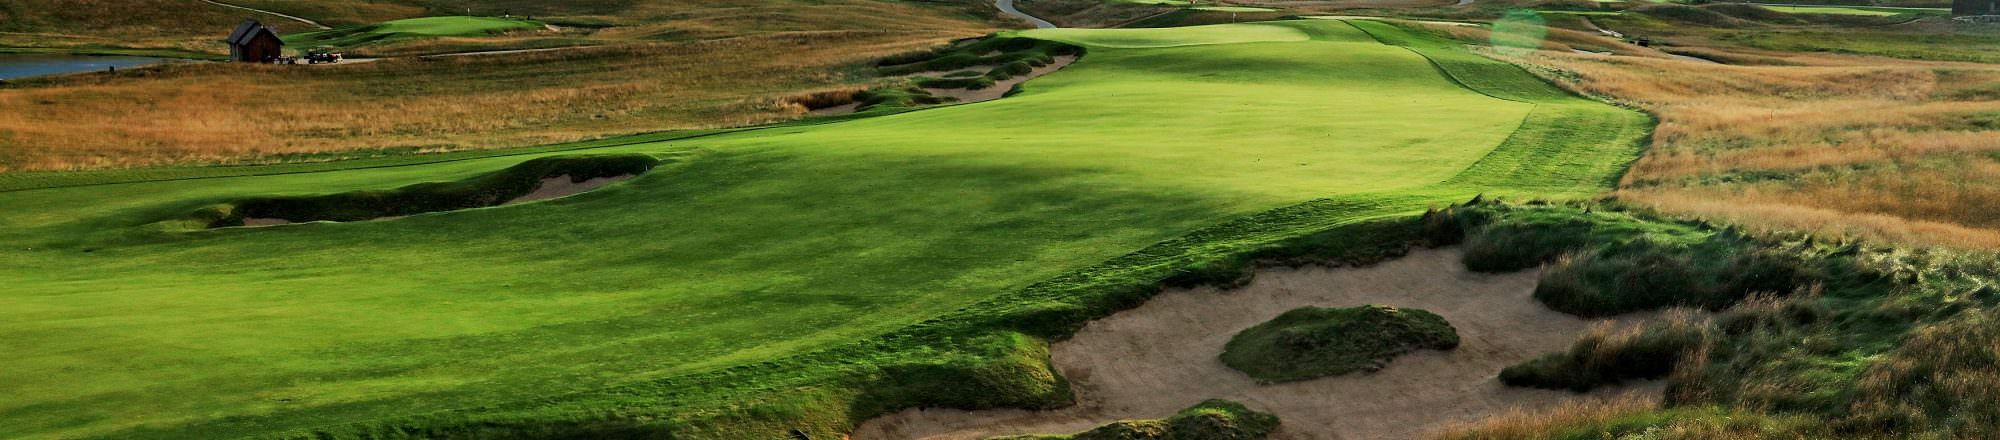 US Open 2017: What can we expect at Erin Hills?